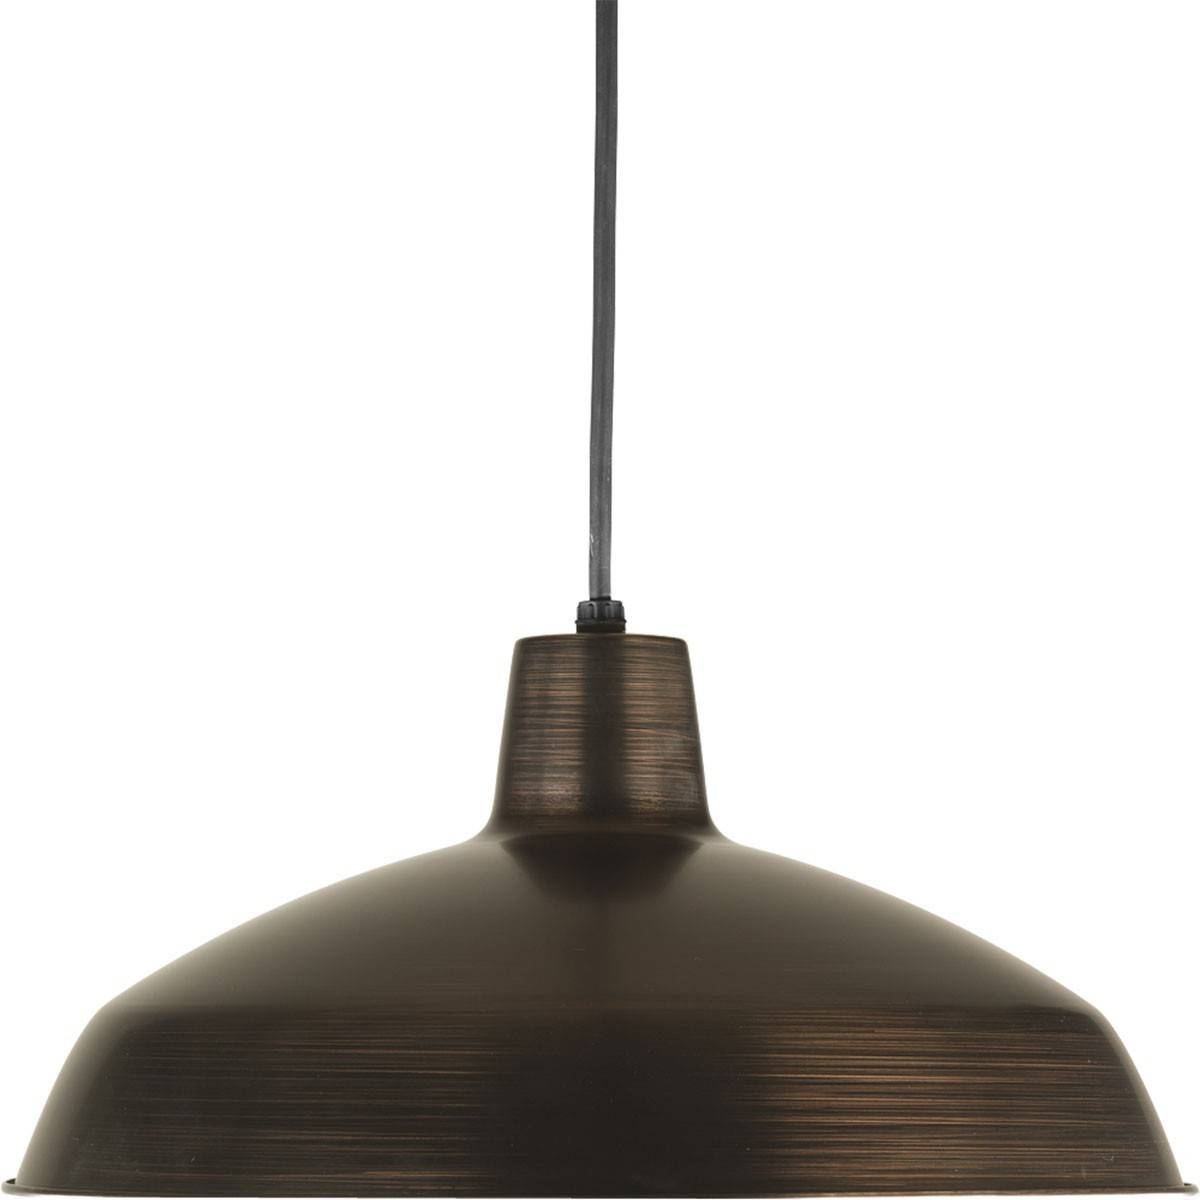 New Cheap Pendant Lighting 57 For Your Pink Pendant Light With pertaining to Cheap Pendant Lighting (Image 9 of 15)